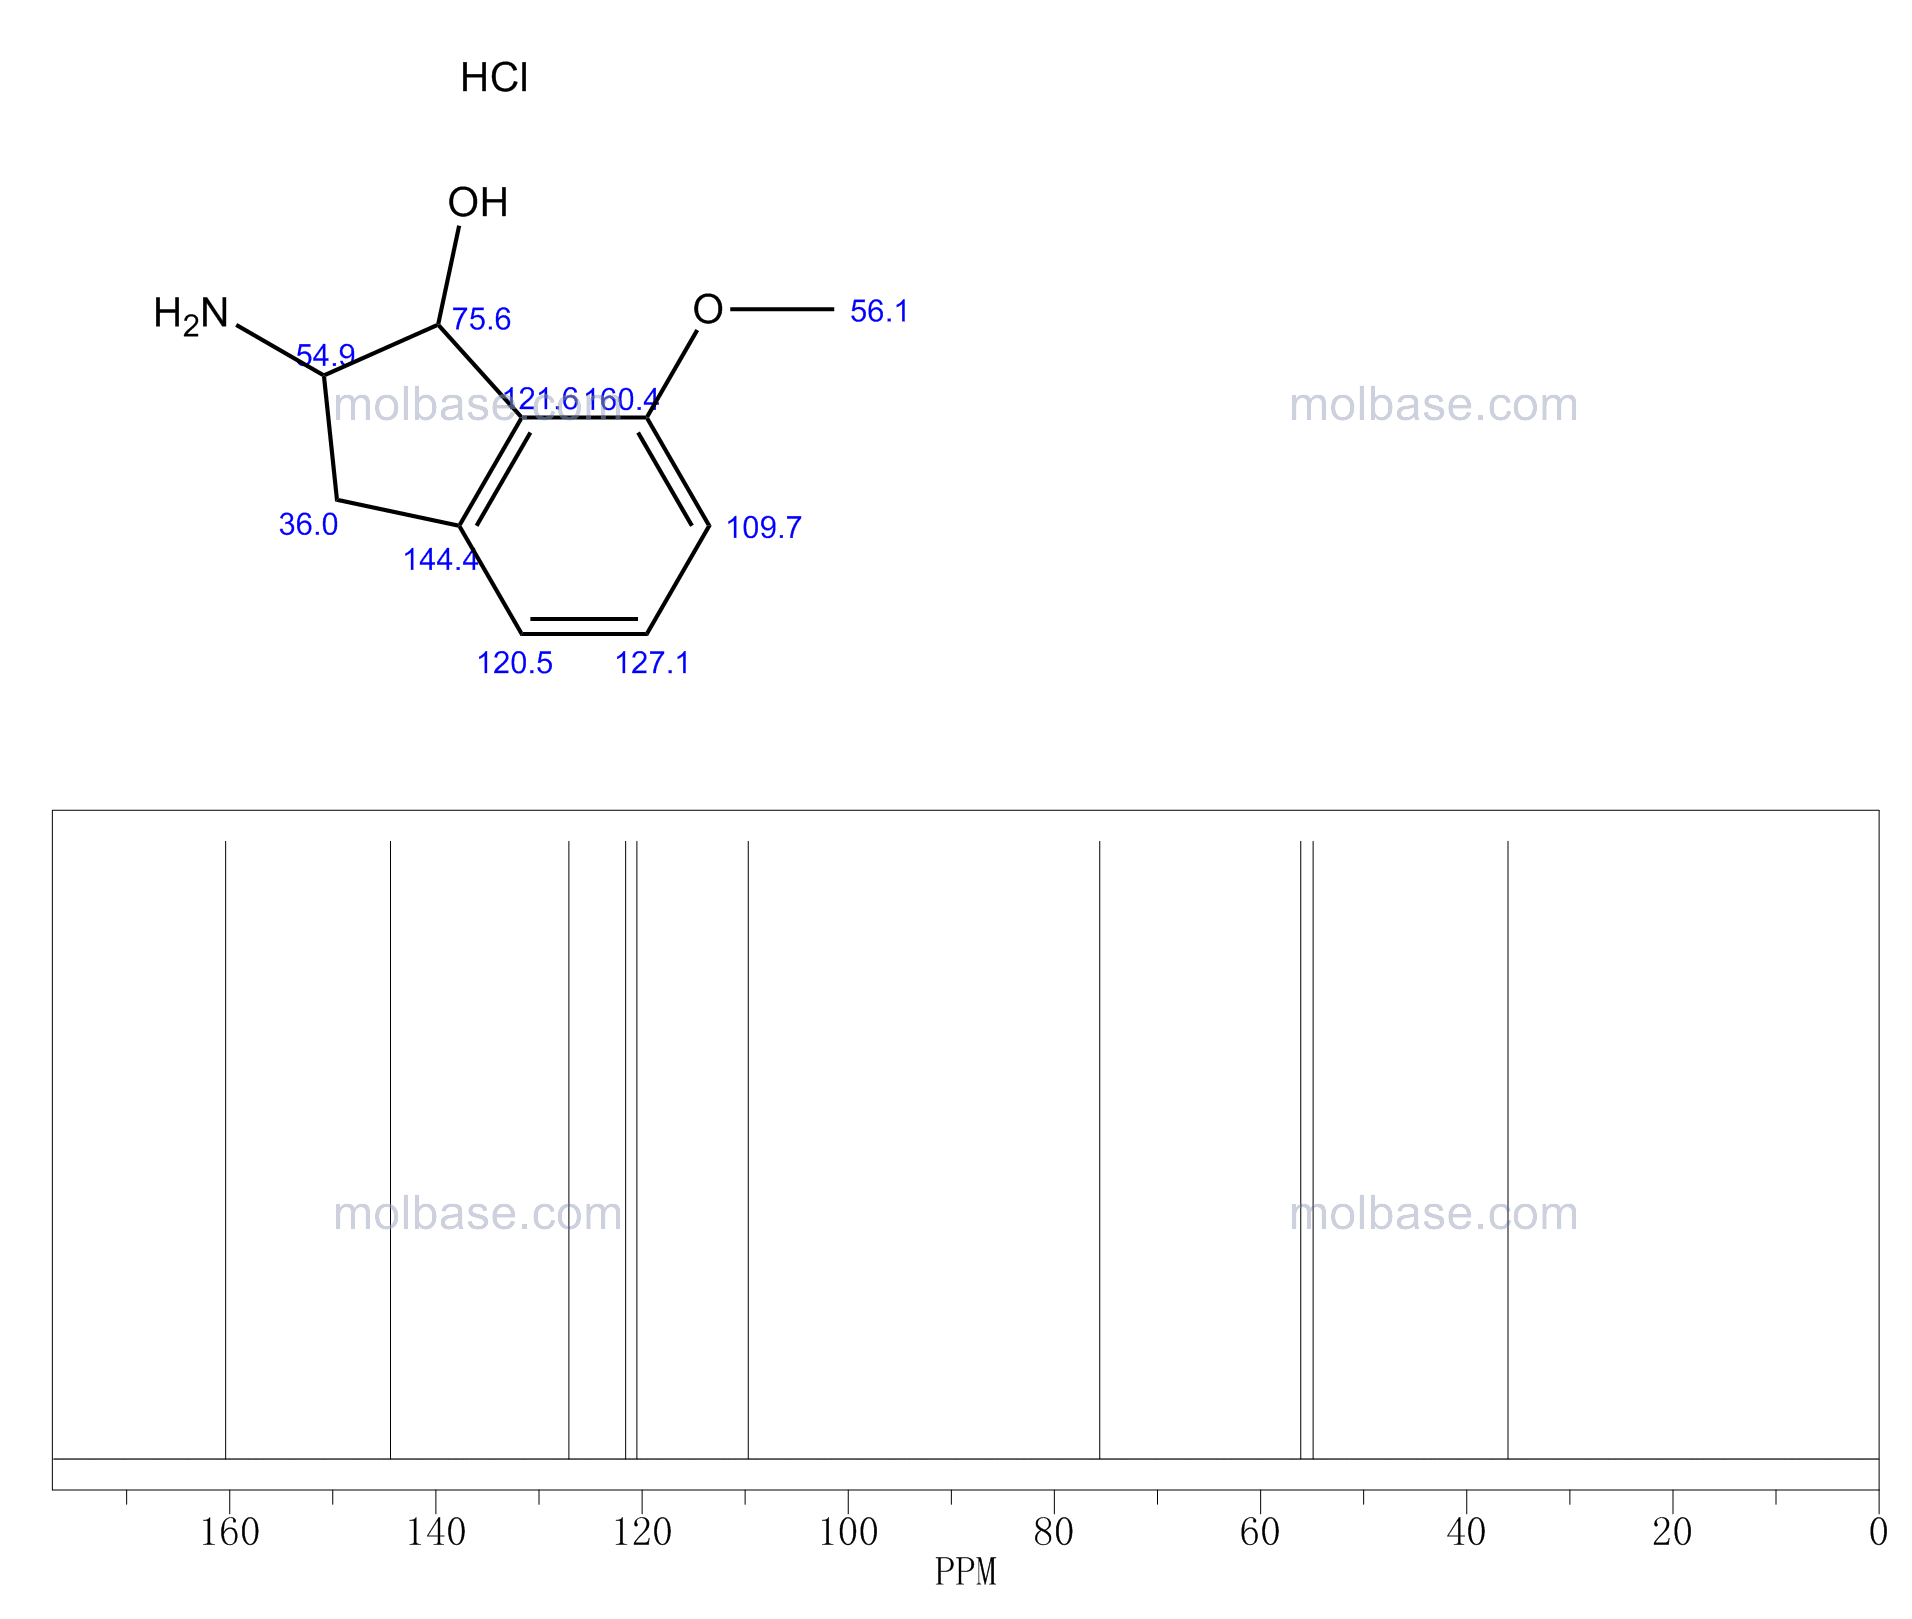 2-AMINO-7-METHOXY-INDAN-1-OL HYDROCHLORIDE NMR spectra analysis, Chemical CAS NO. 872785-85-8 NMR spectral analysis, 2-AMINO-7-METHOXY-INDAN-1-OL HYDROCHLORIDE C-NMR spectrum